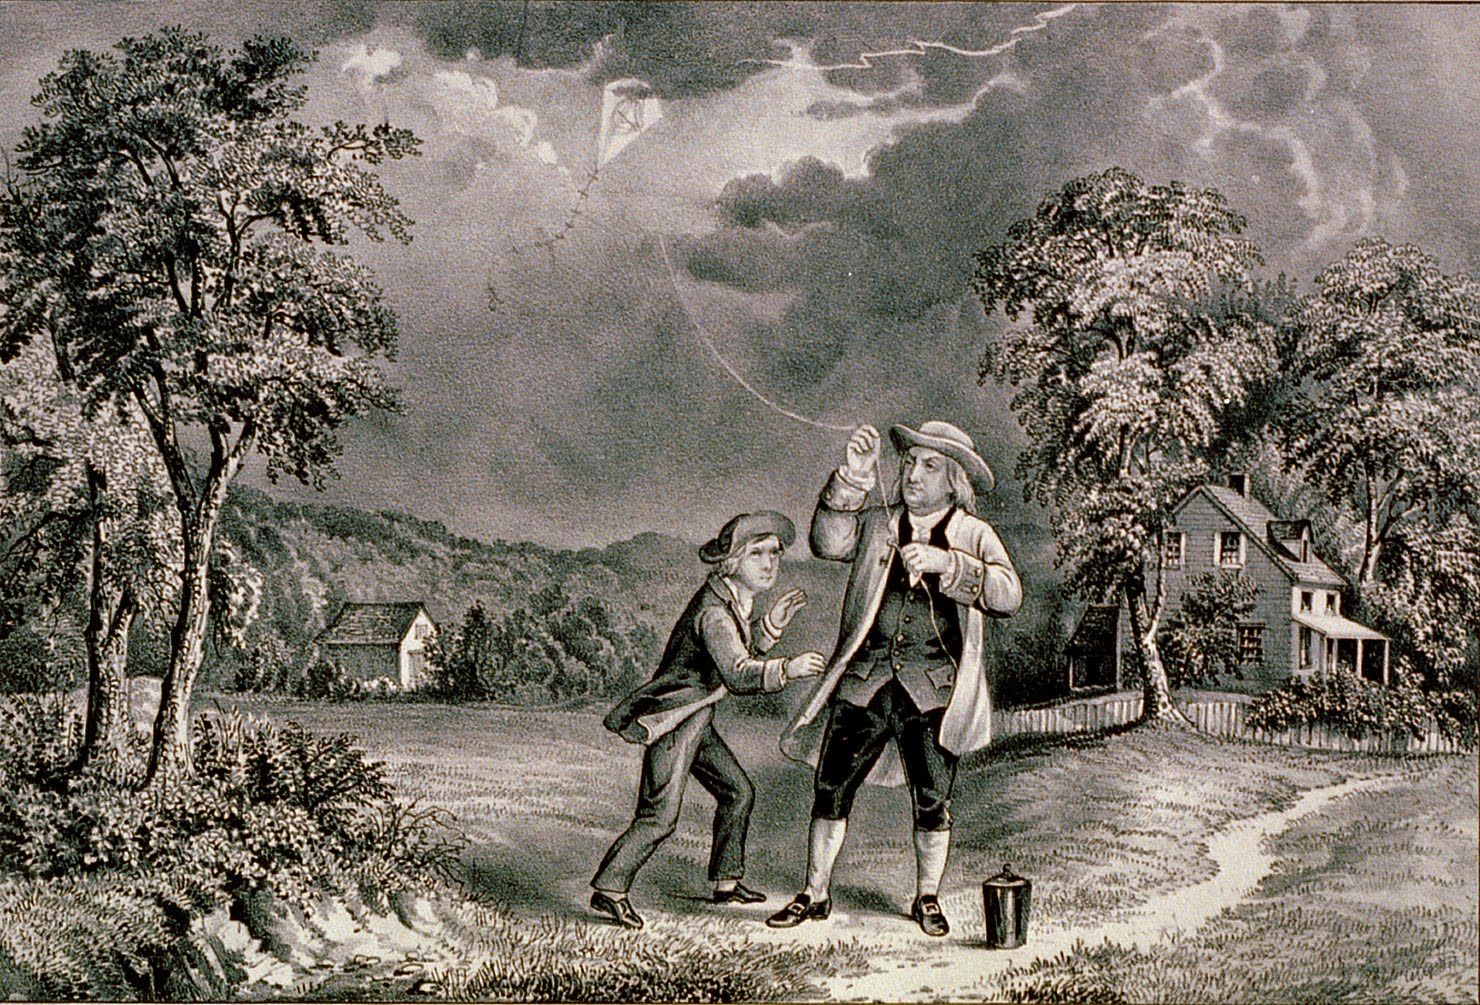 benjamin franklin the kite experiment and Benjamin franklin: inventor, a  the kite experiment benjamin franklin's wildly dangerous kite experiment has grown into an american legend.